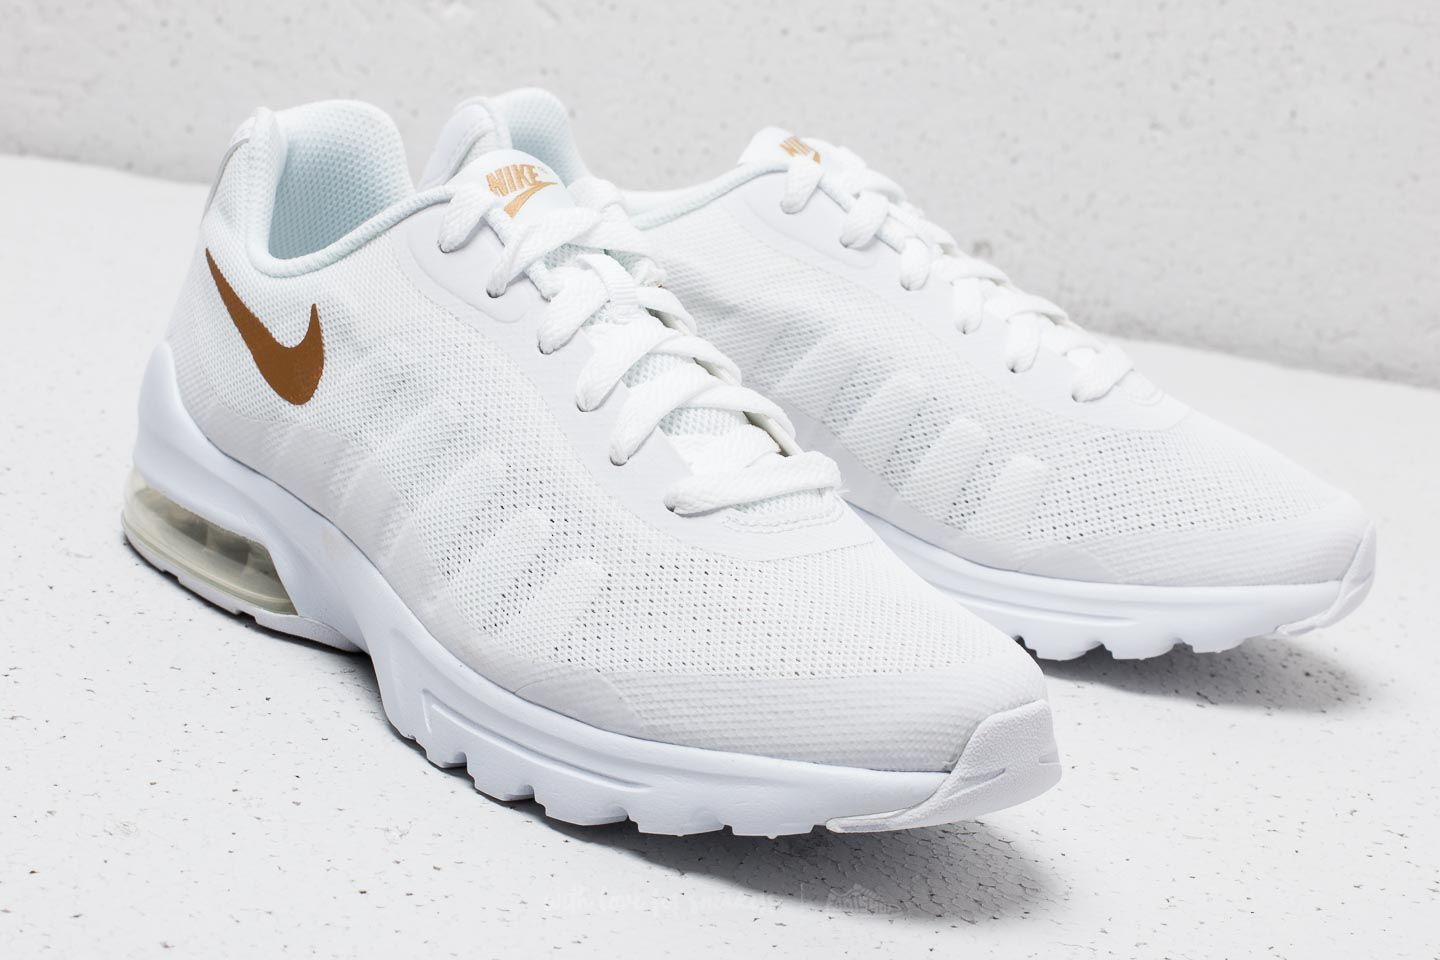 new styles a7578 4cb49 release date nike air max white with gold 2d6ef 0dd53